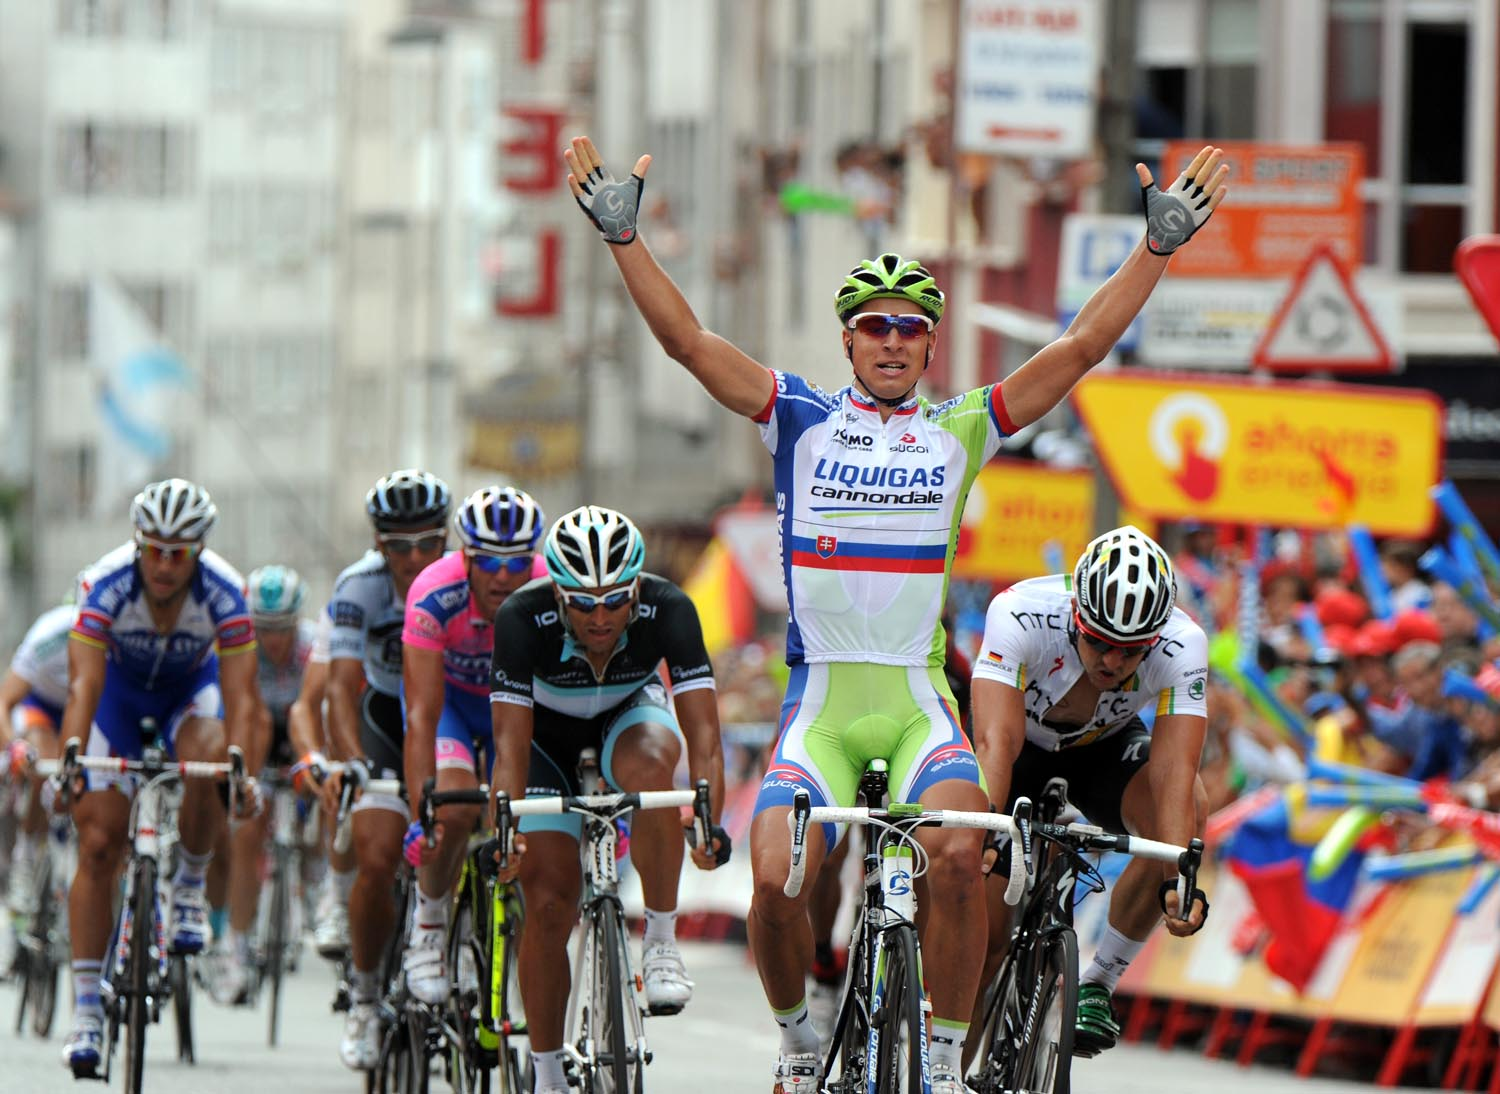 Peter Sagan wins, Vuelta a Espana 2011, stage 12